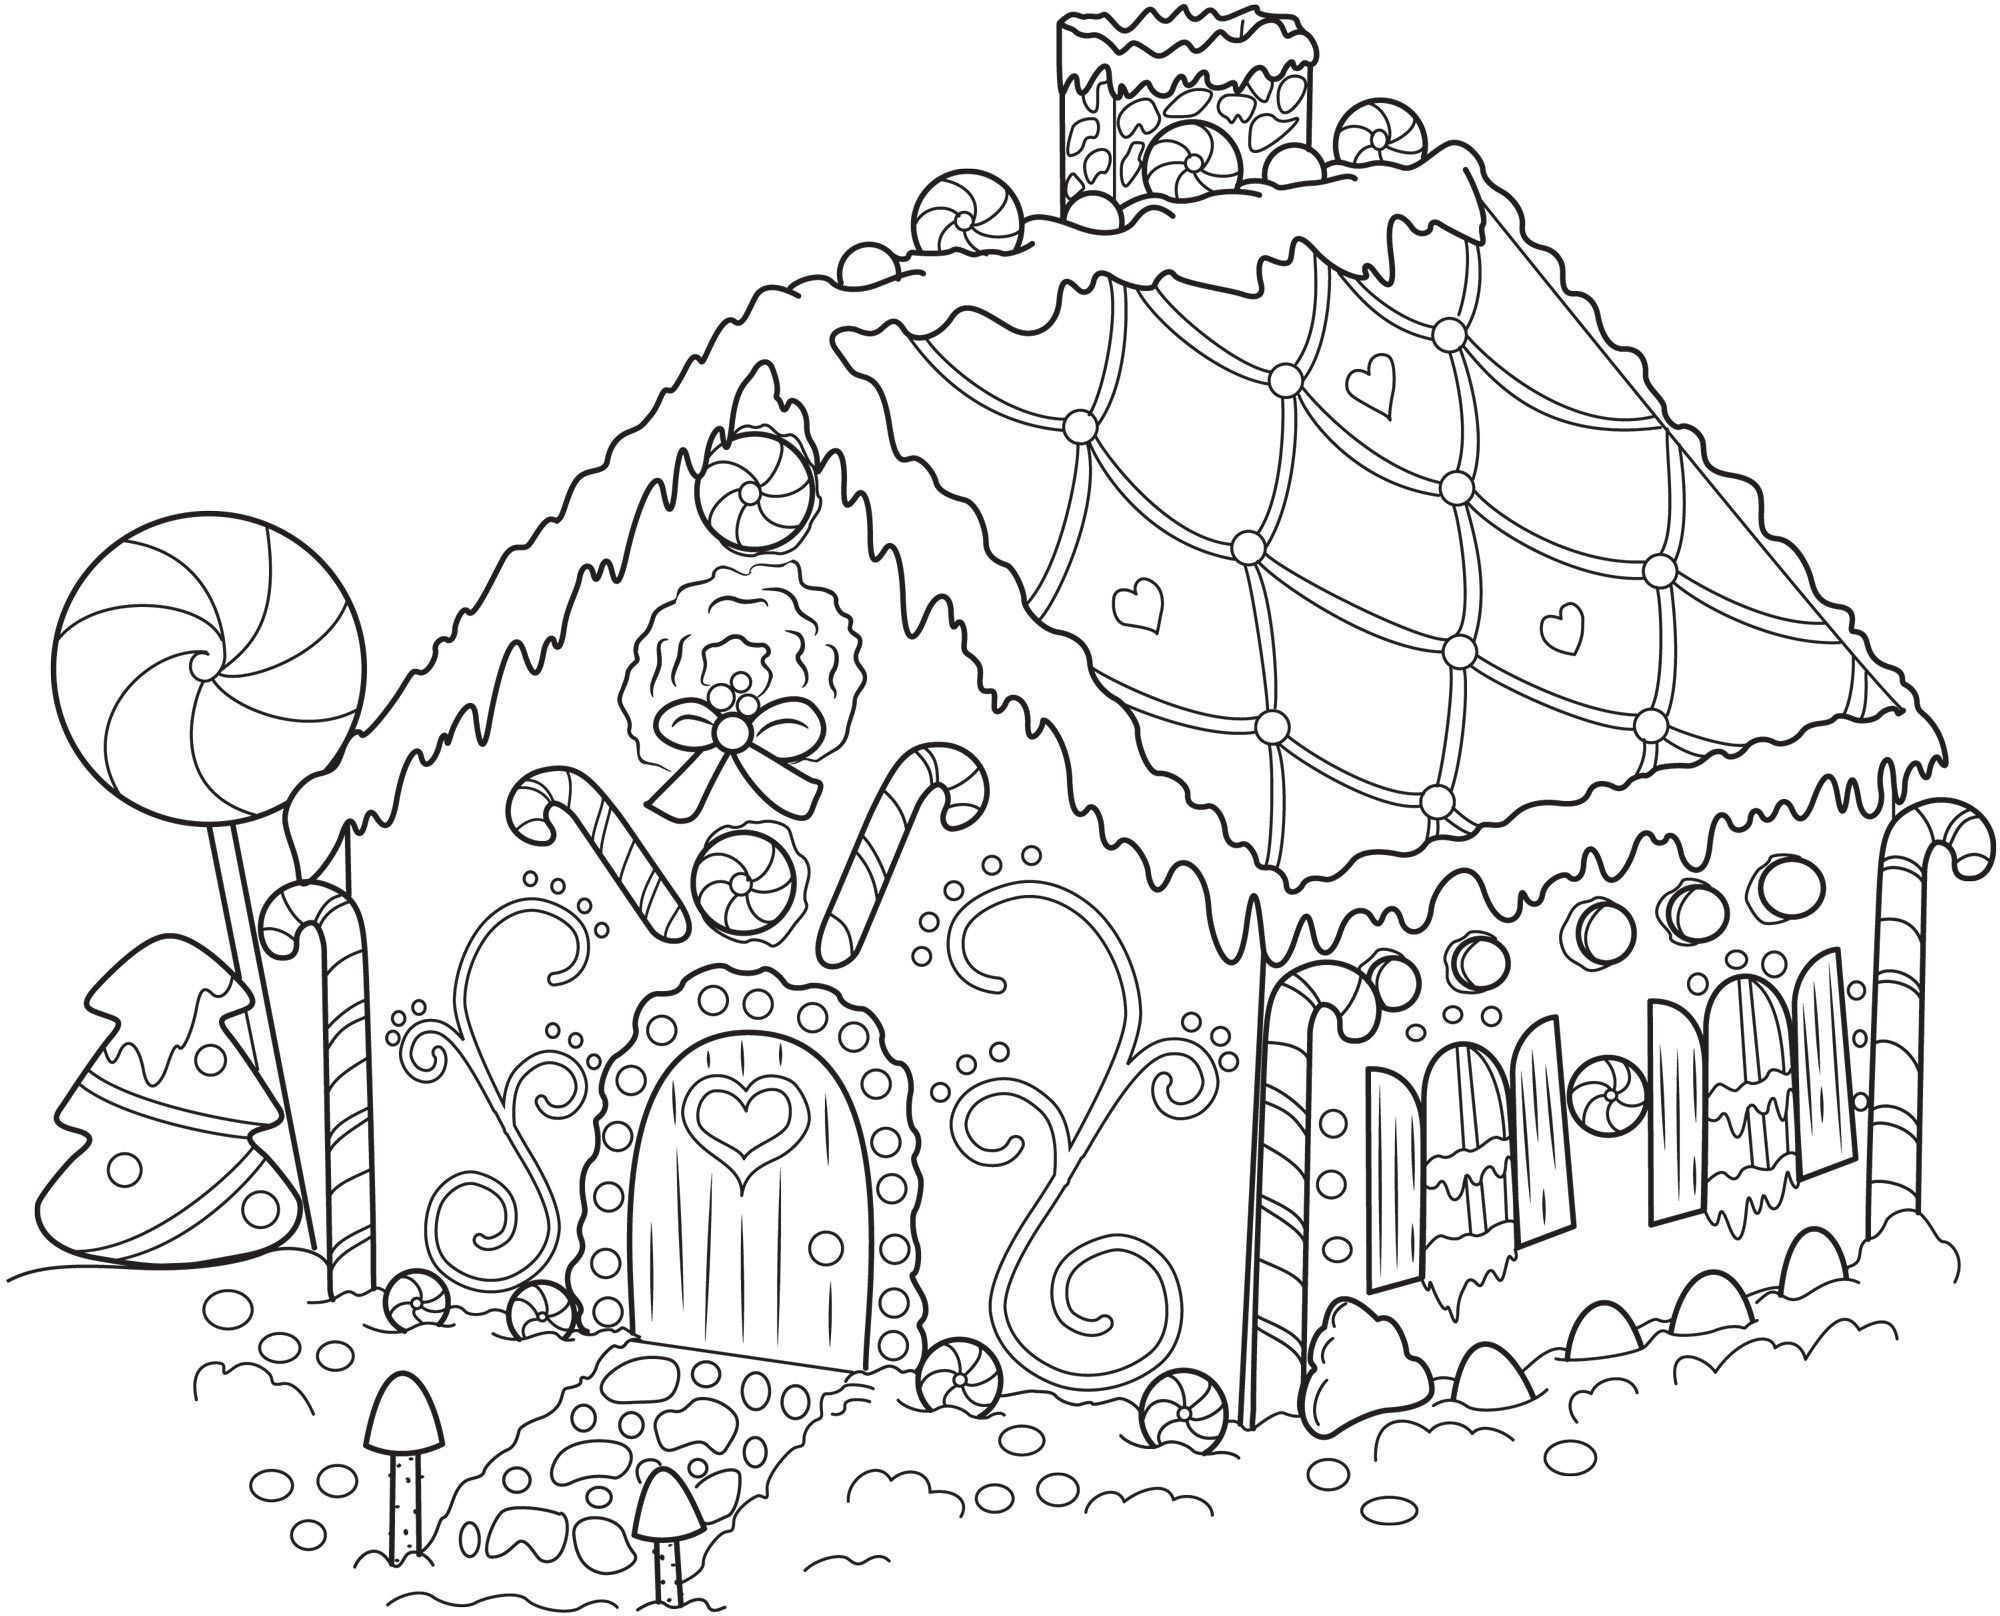 Free gingerbread man fairy tale coloring pages coloring pages gingerbread house